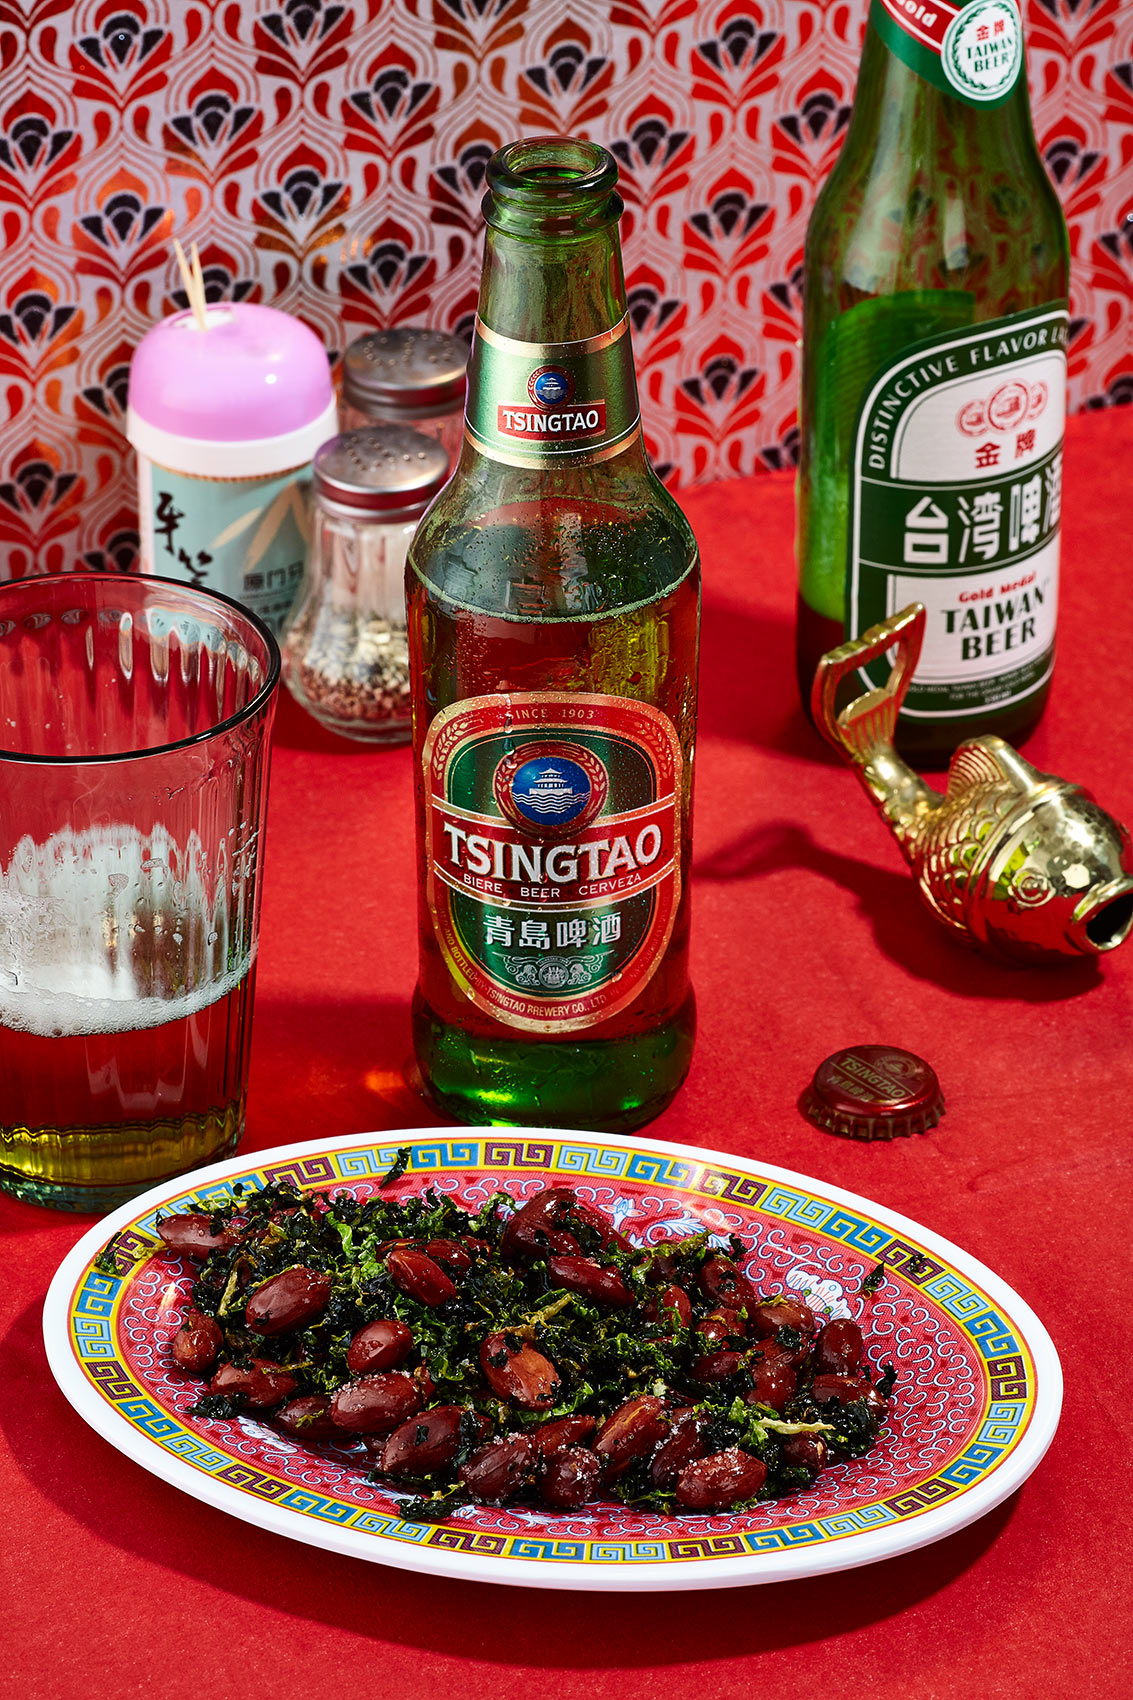 Crispy Seaweed and Soy fried Peanuts with Tsing Tao Beer